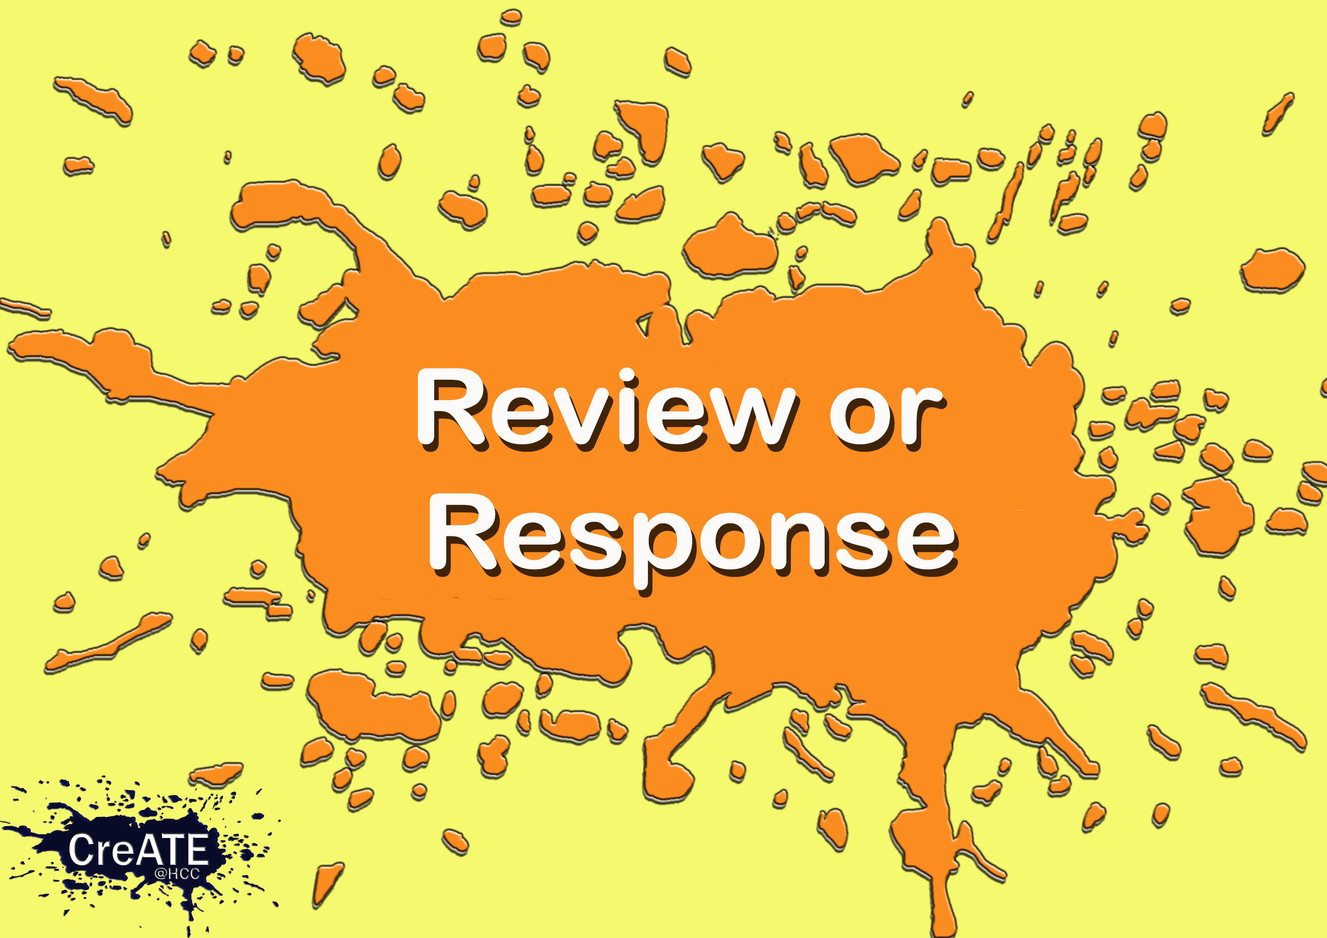 Review or Response Category